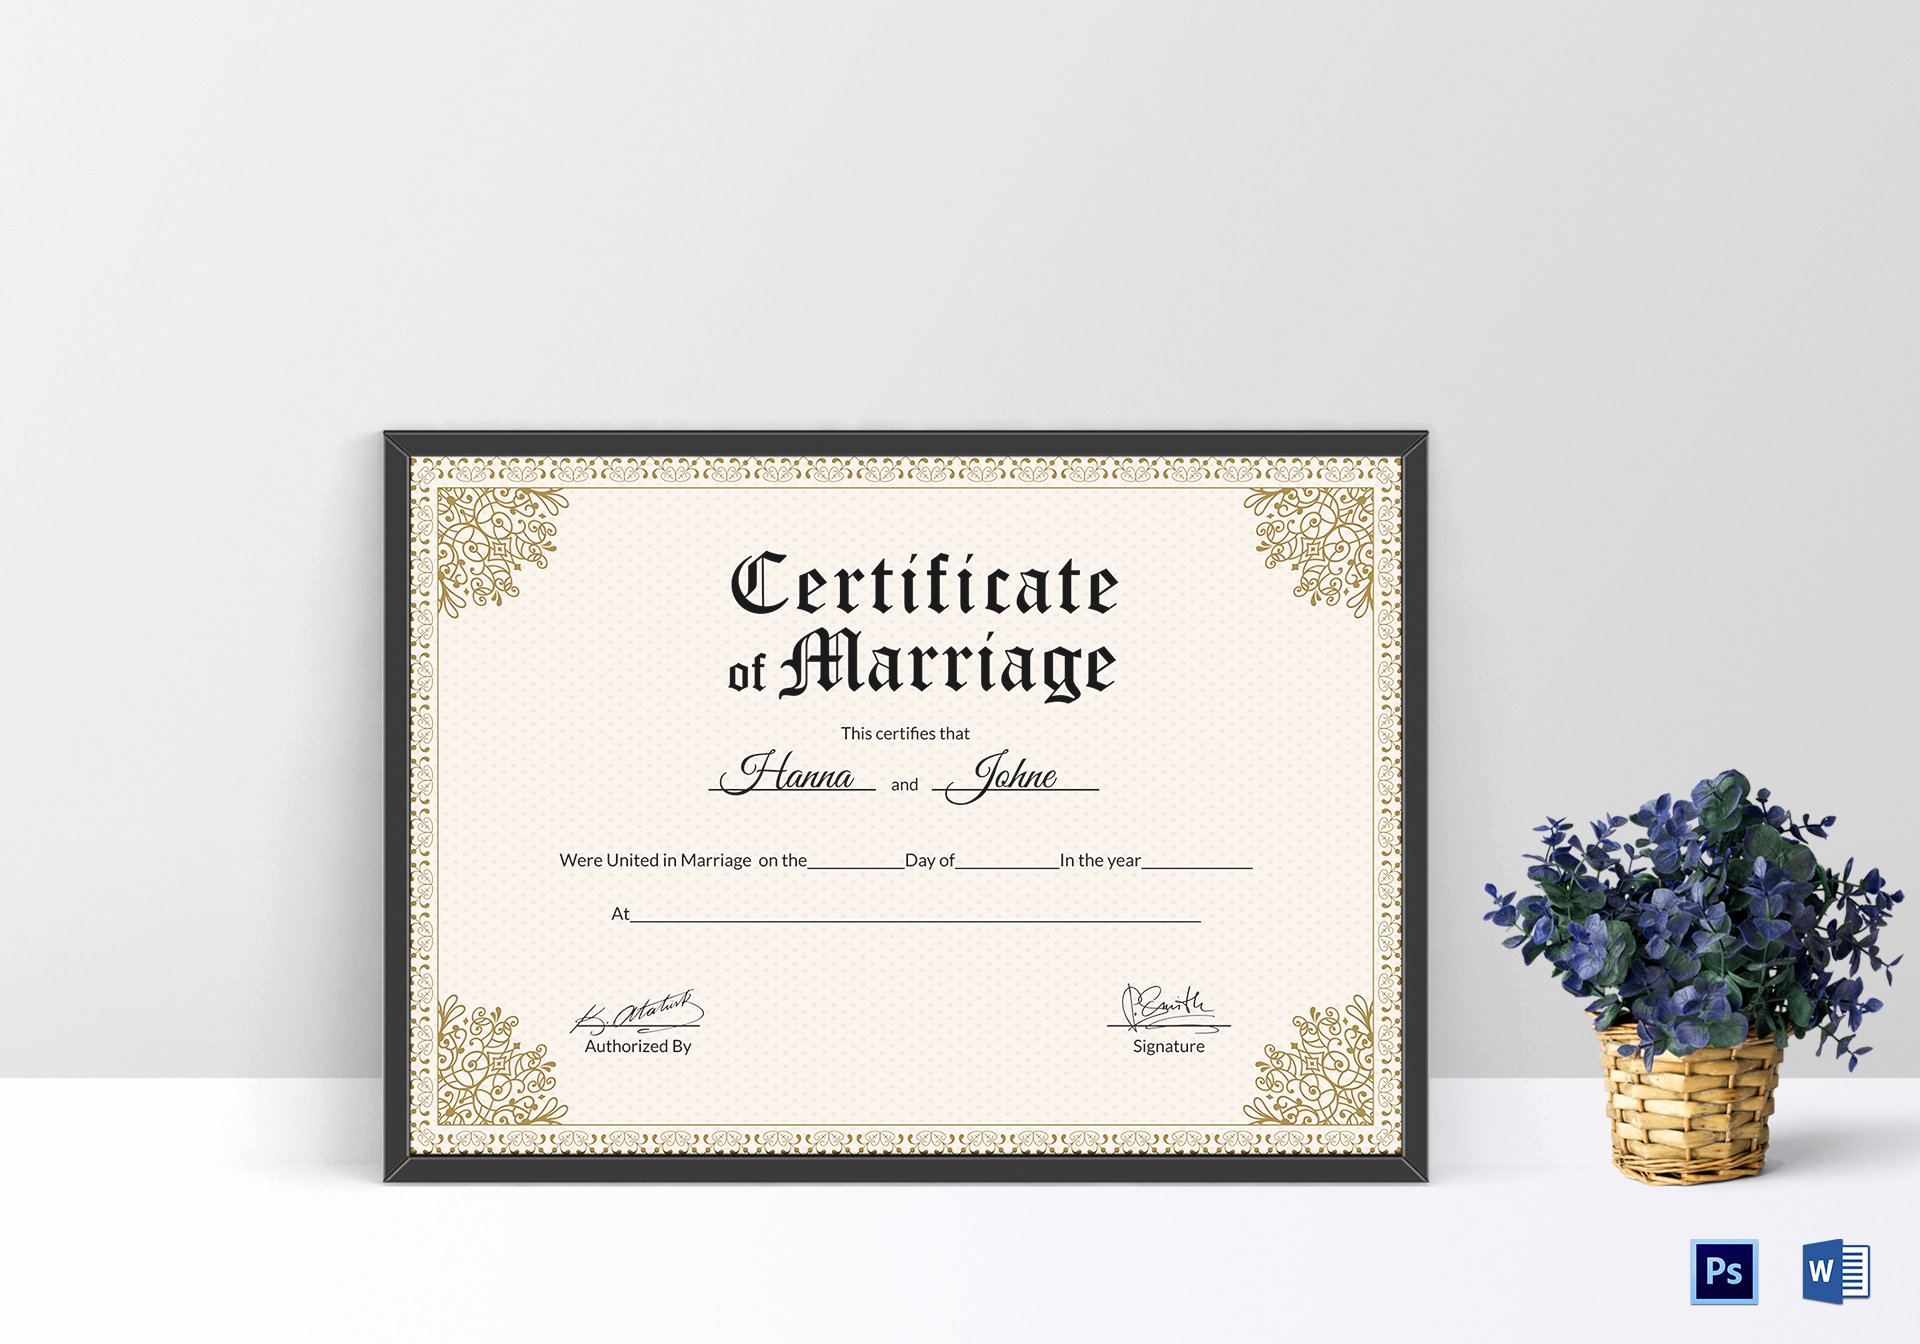 Keepsake Marriage Certificate Template Best Of Keepsake Marriage Certificate Design Template In Psd Word